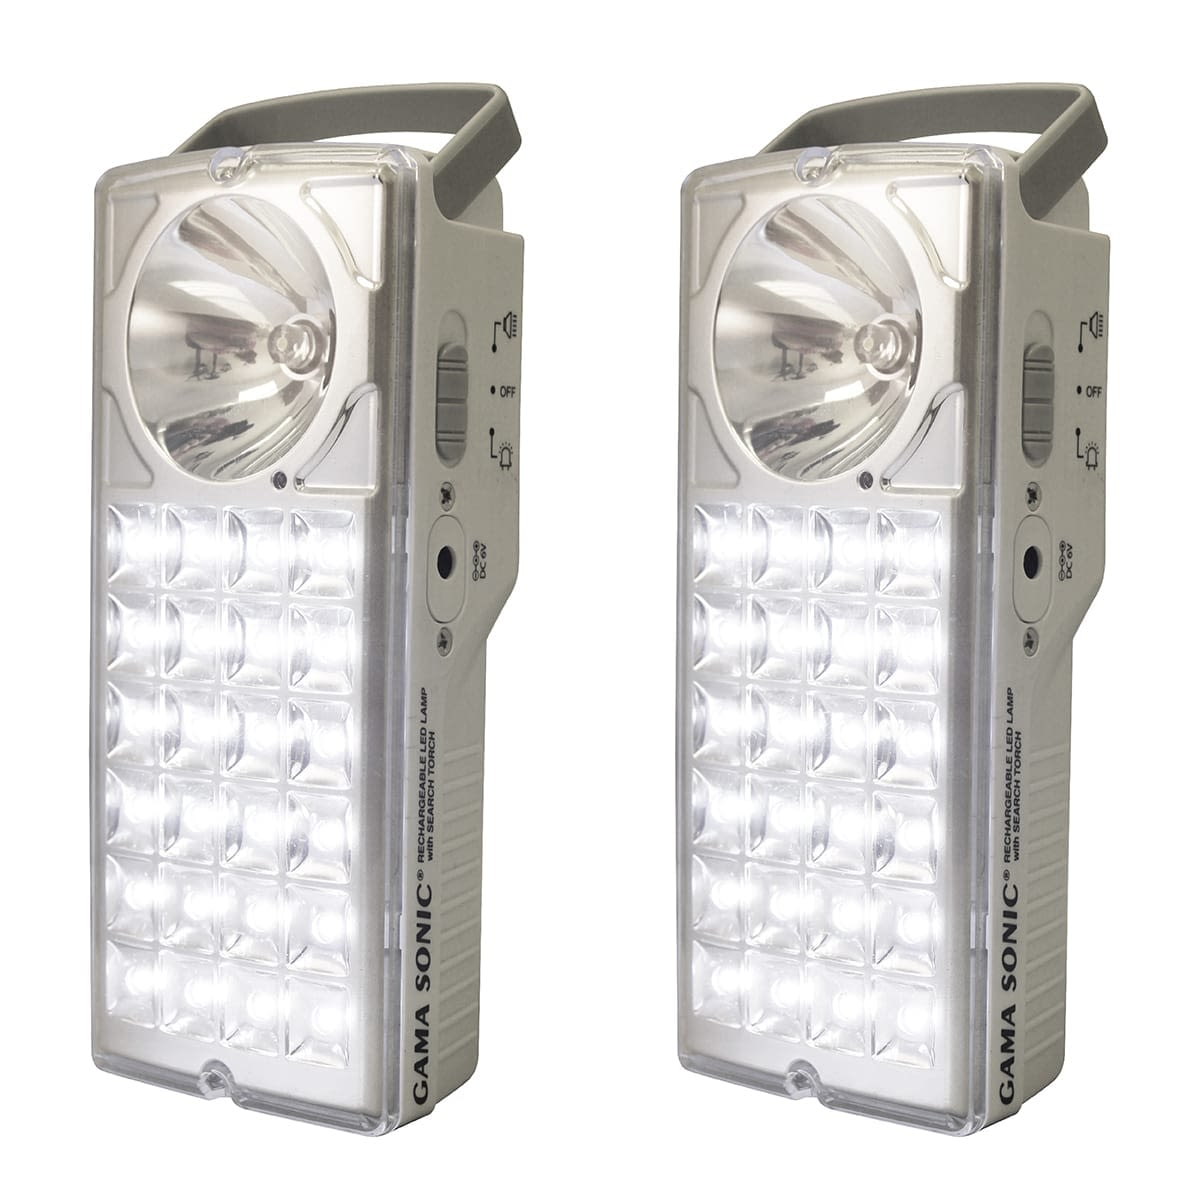 Emergency-Rechargeable-Lantern-With-Flashlight DL-972LS